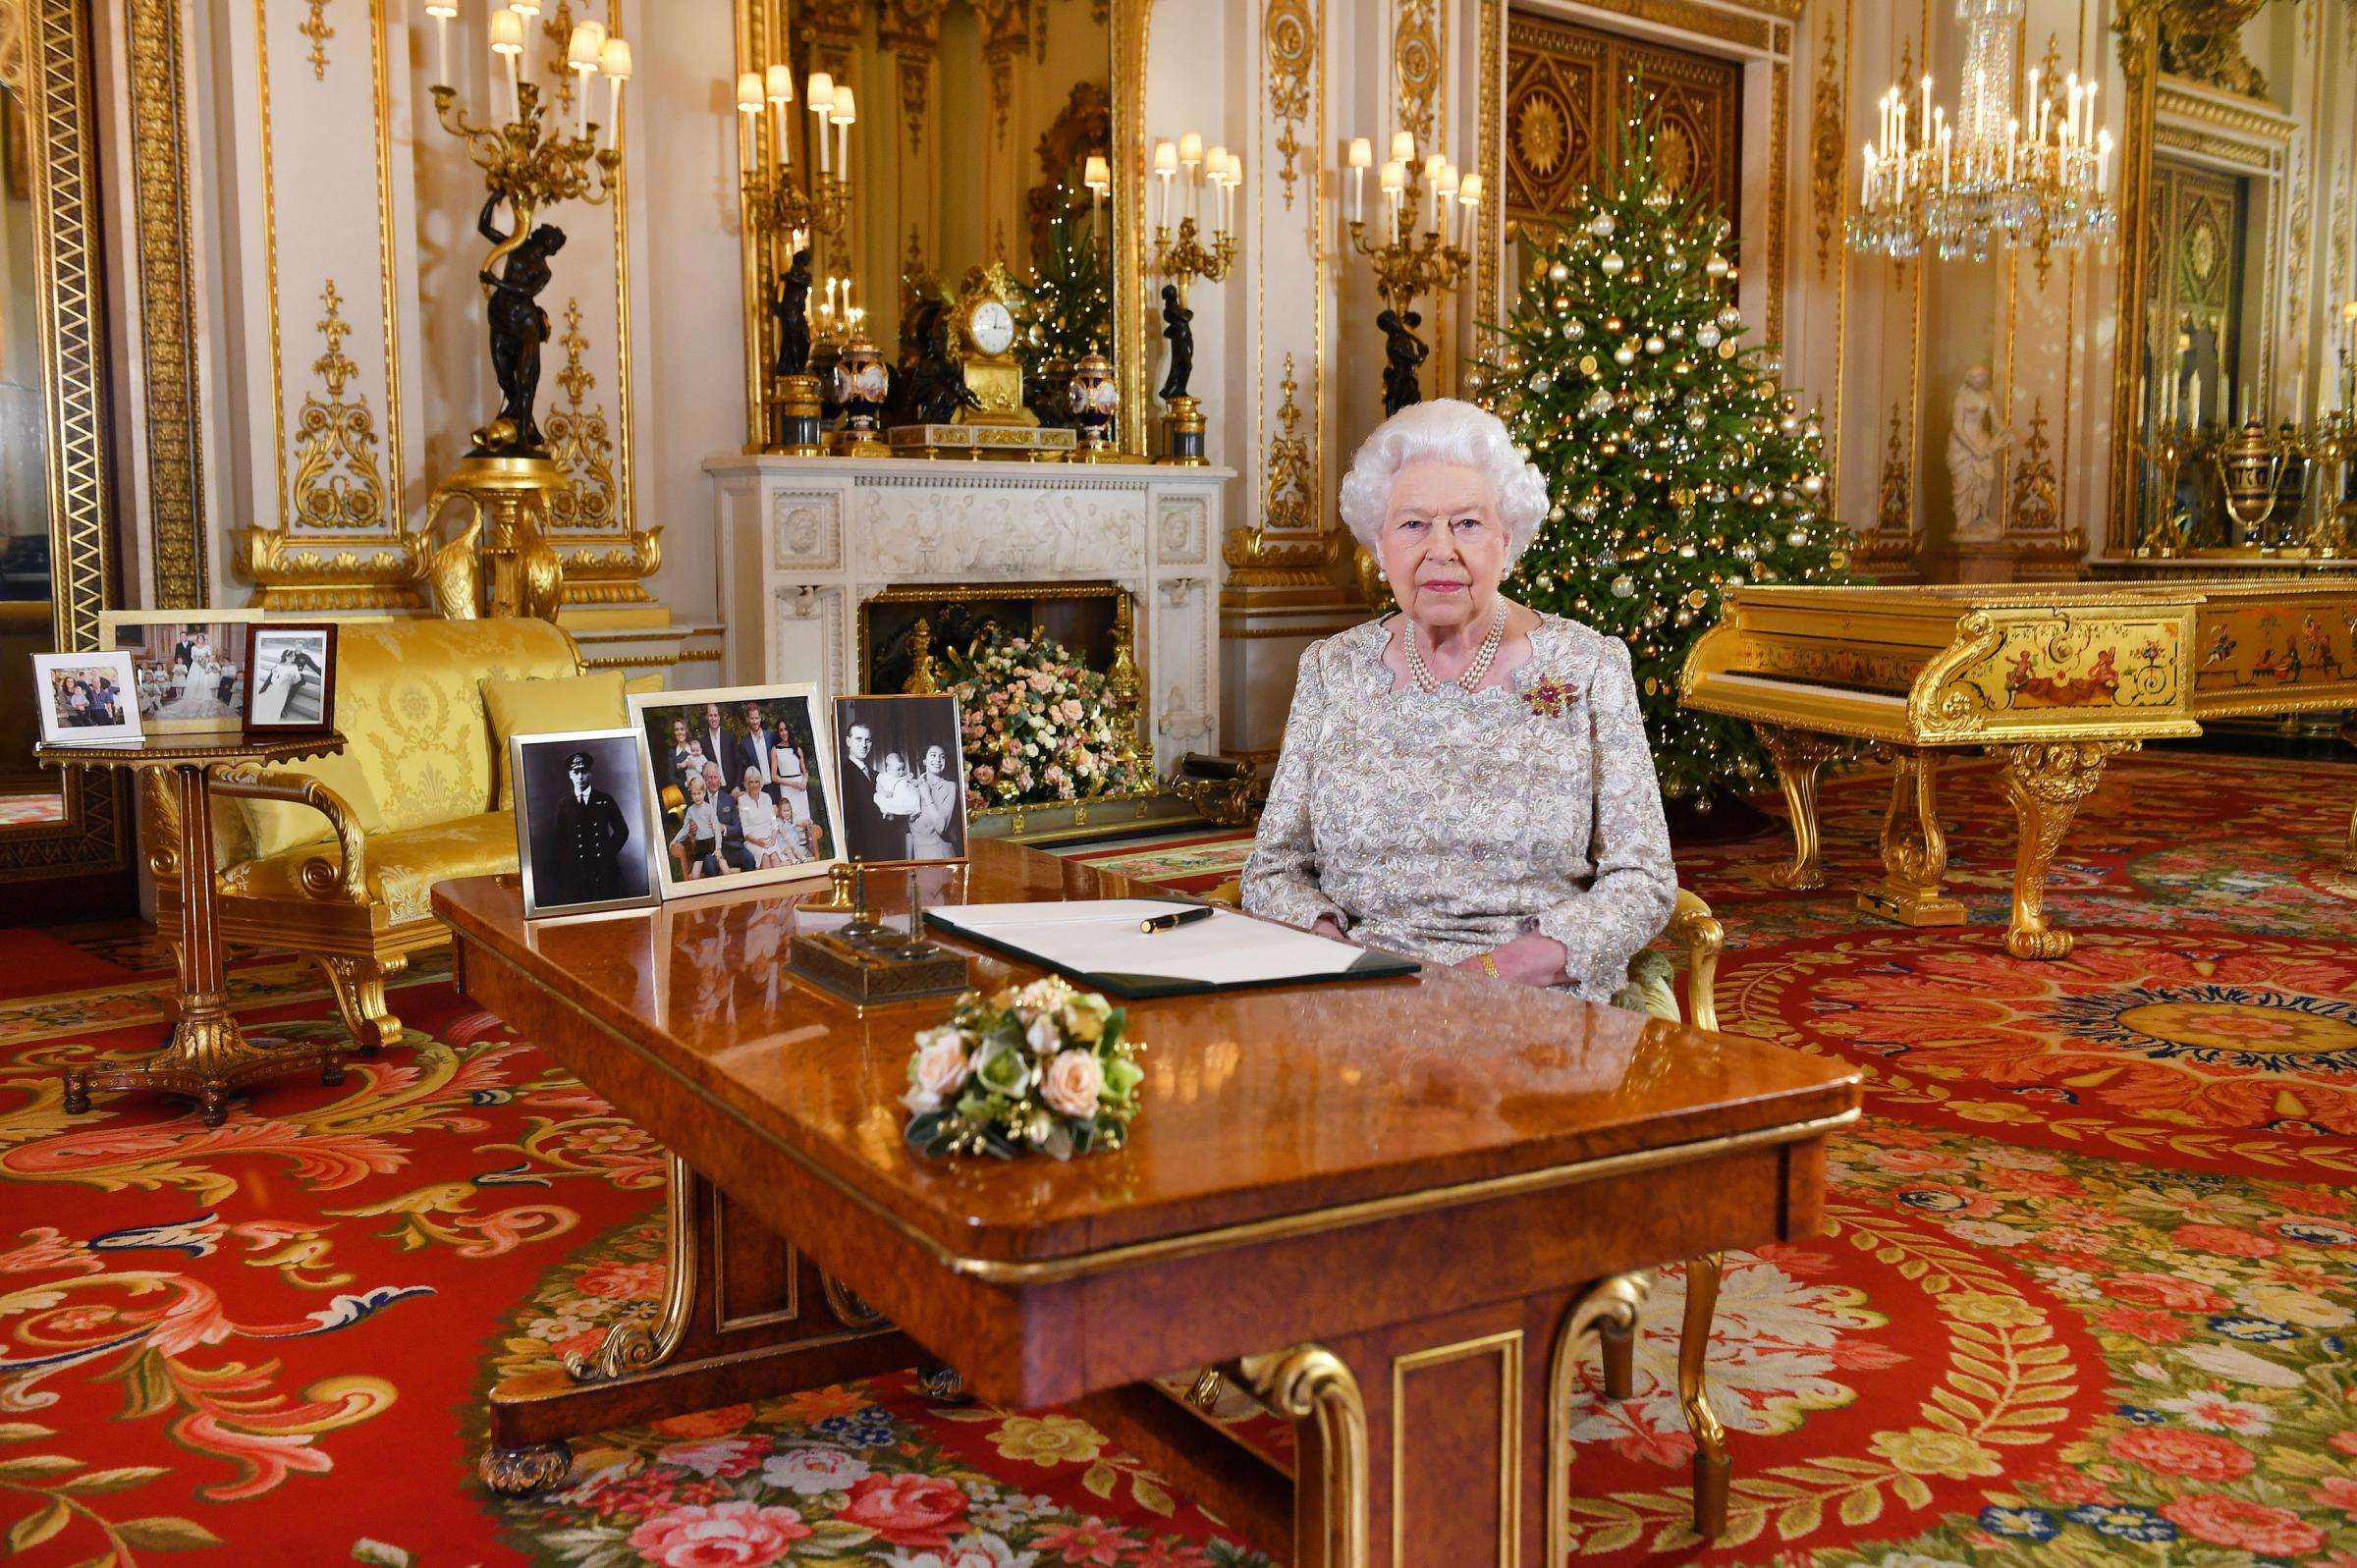 Unionist troll spectacularly misses the point on Queen's gold piano